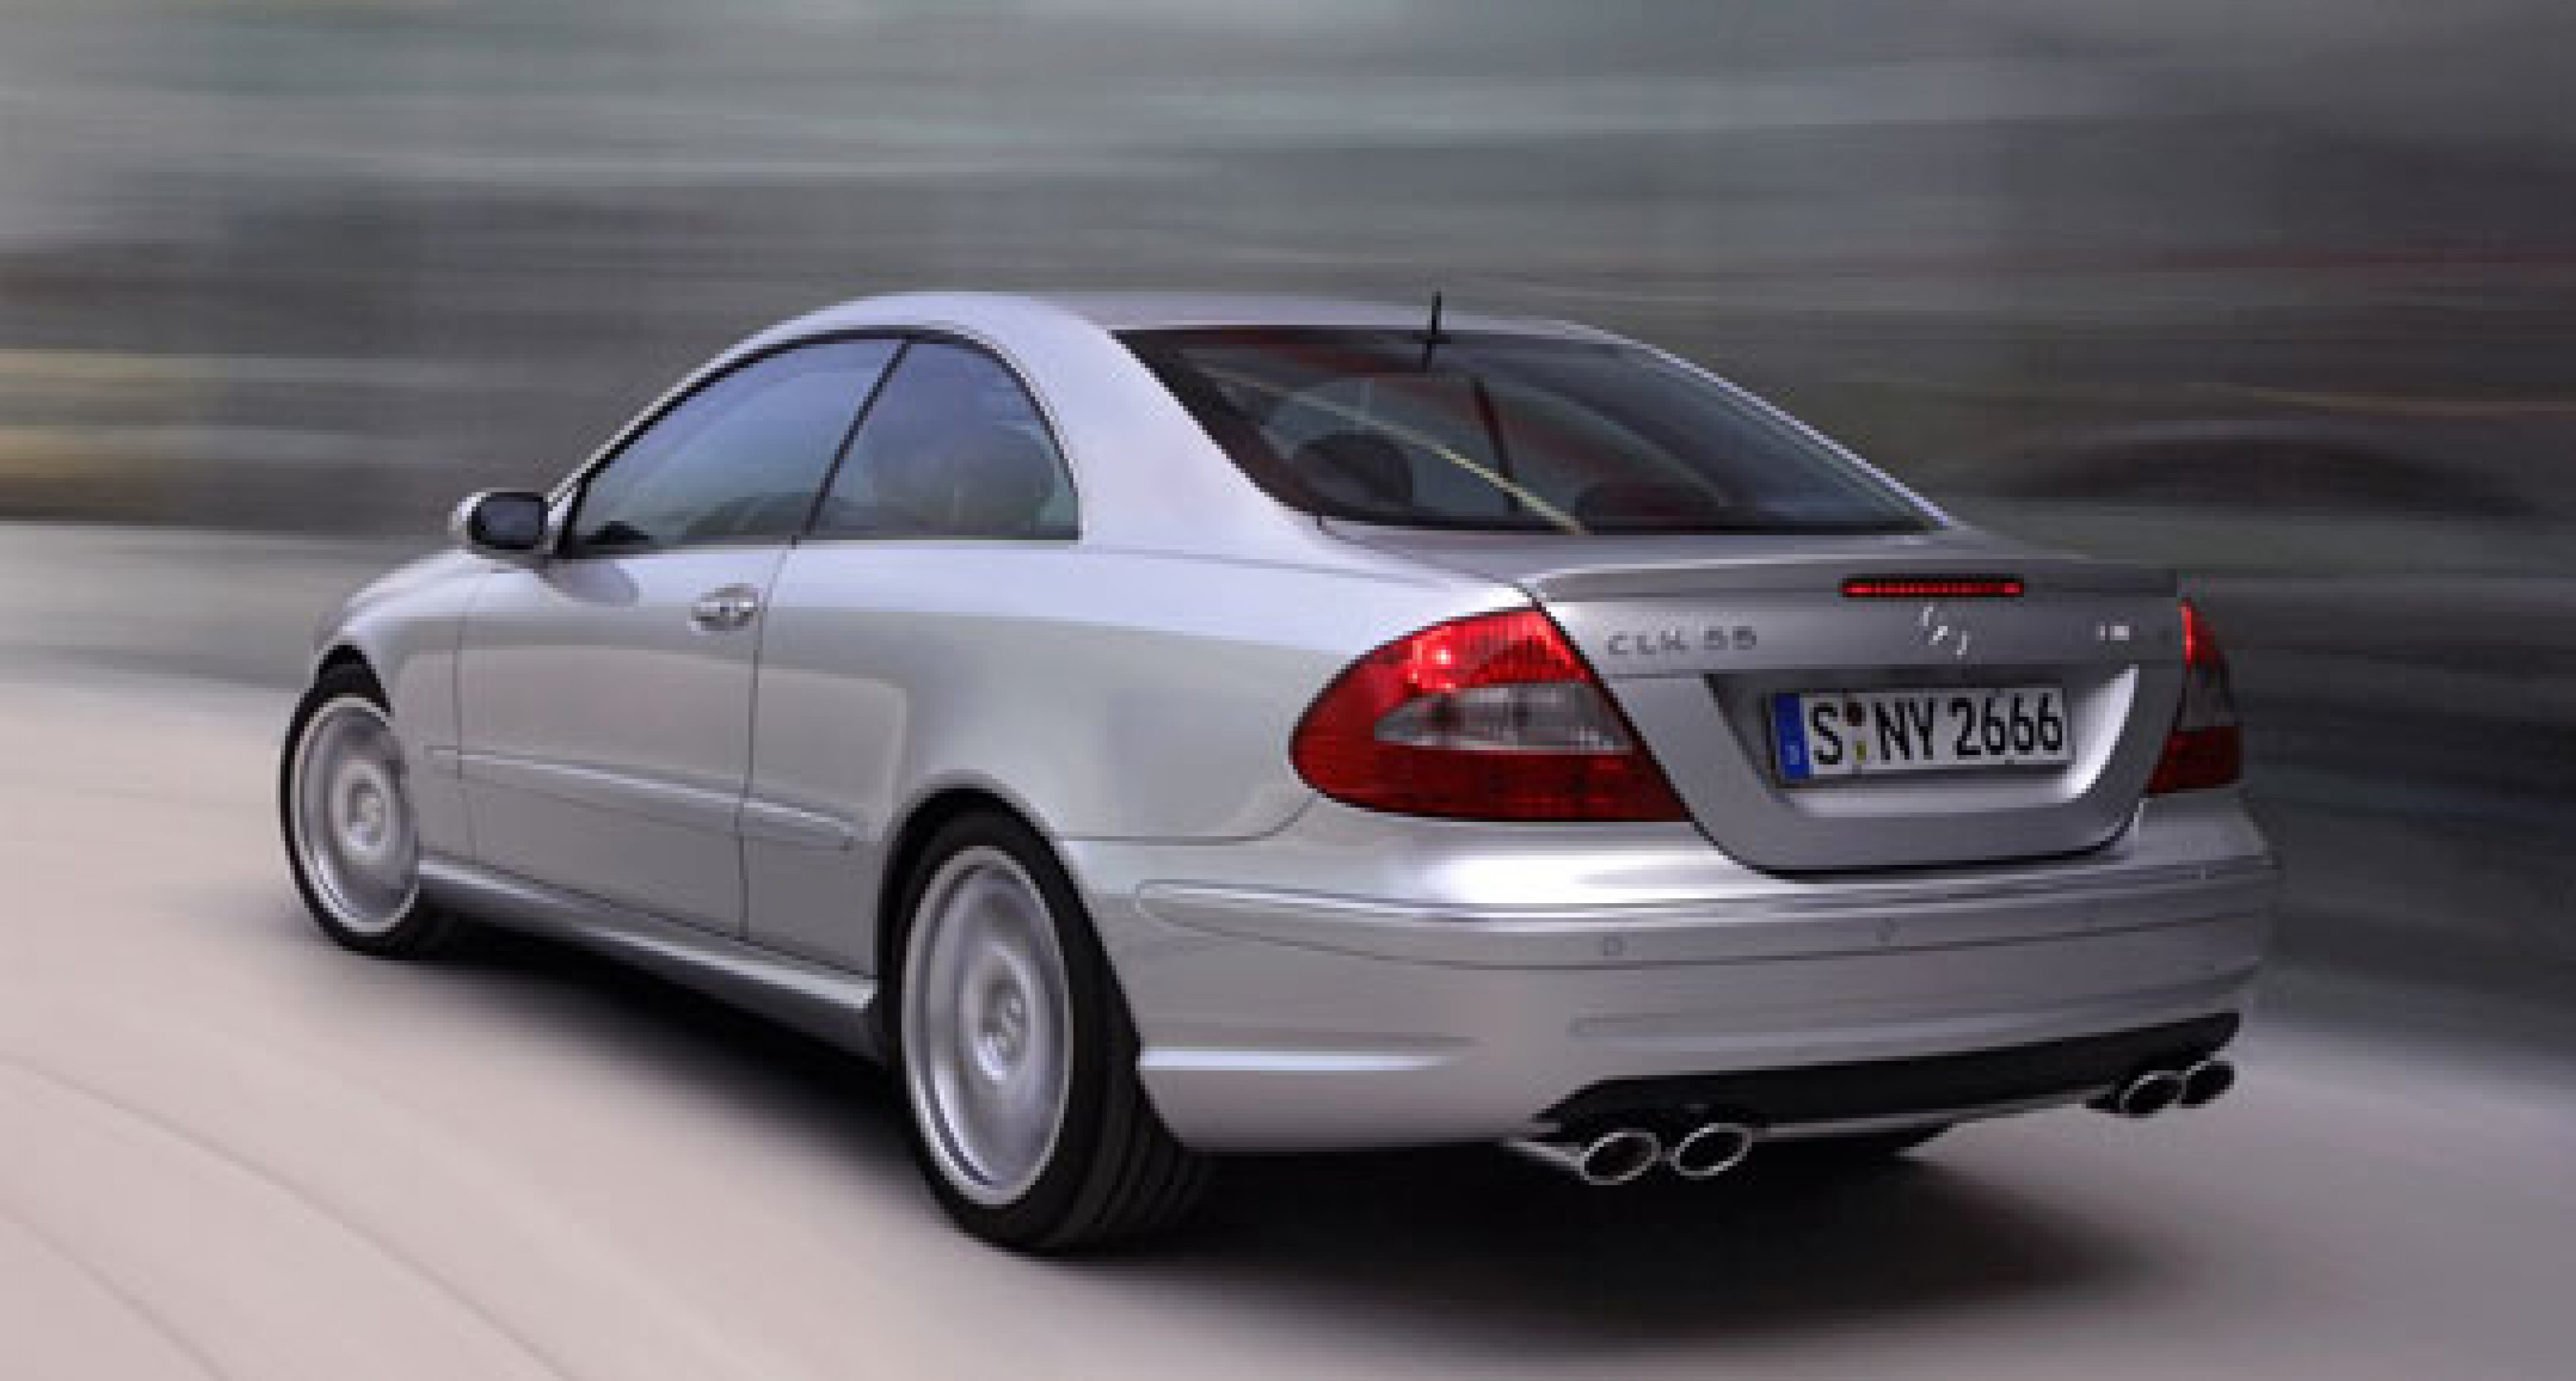 New AMG sports package for Mercedes Benz CLK Class